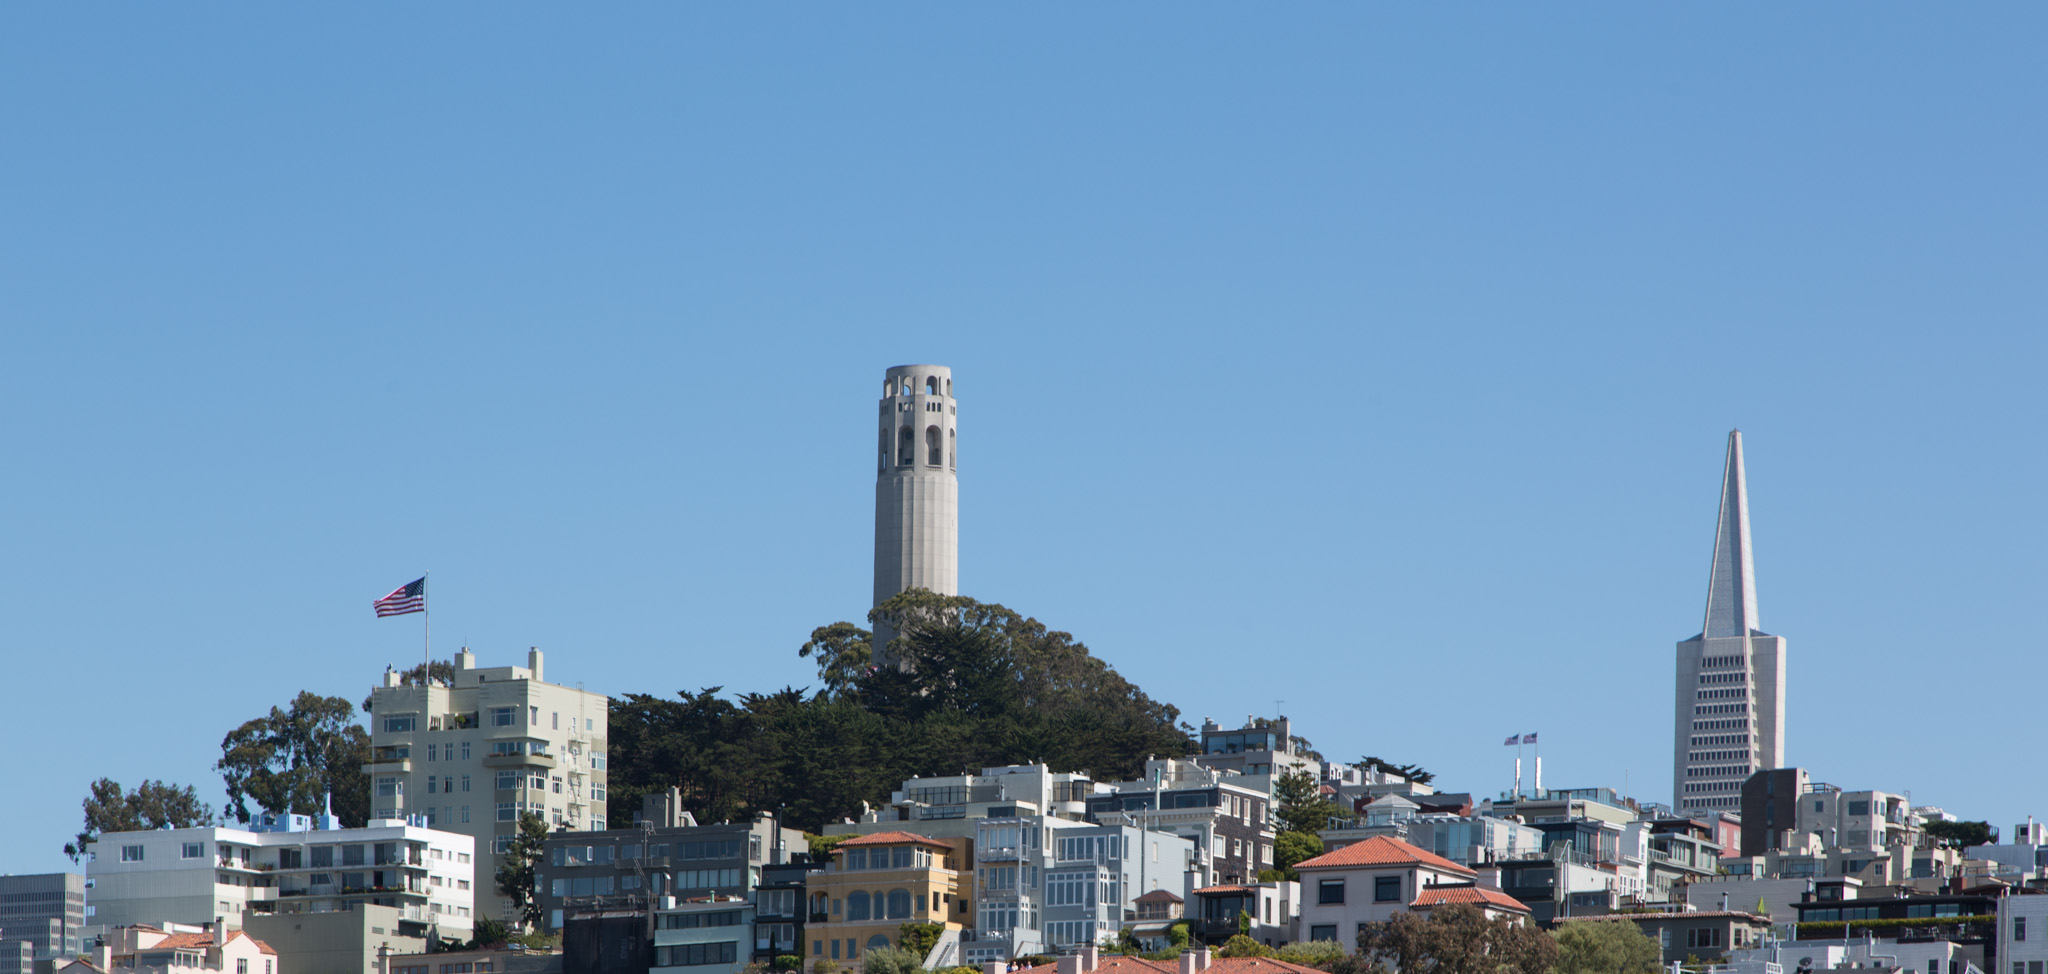 Coit Tower and the Transamerica Pyramid peek up from the San Francisco skyline.